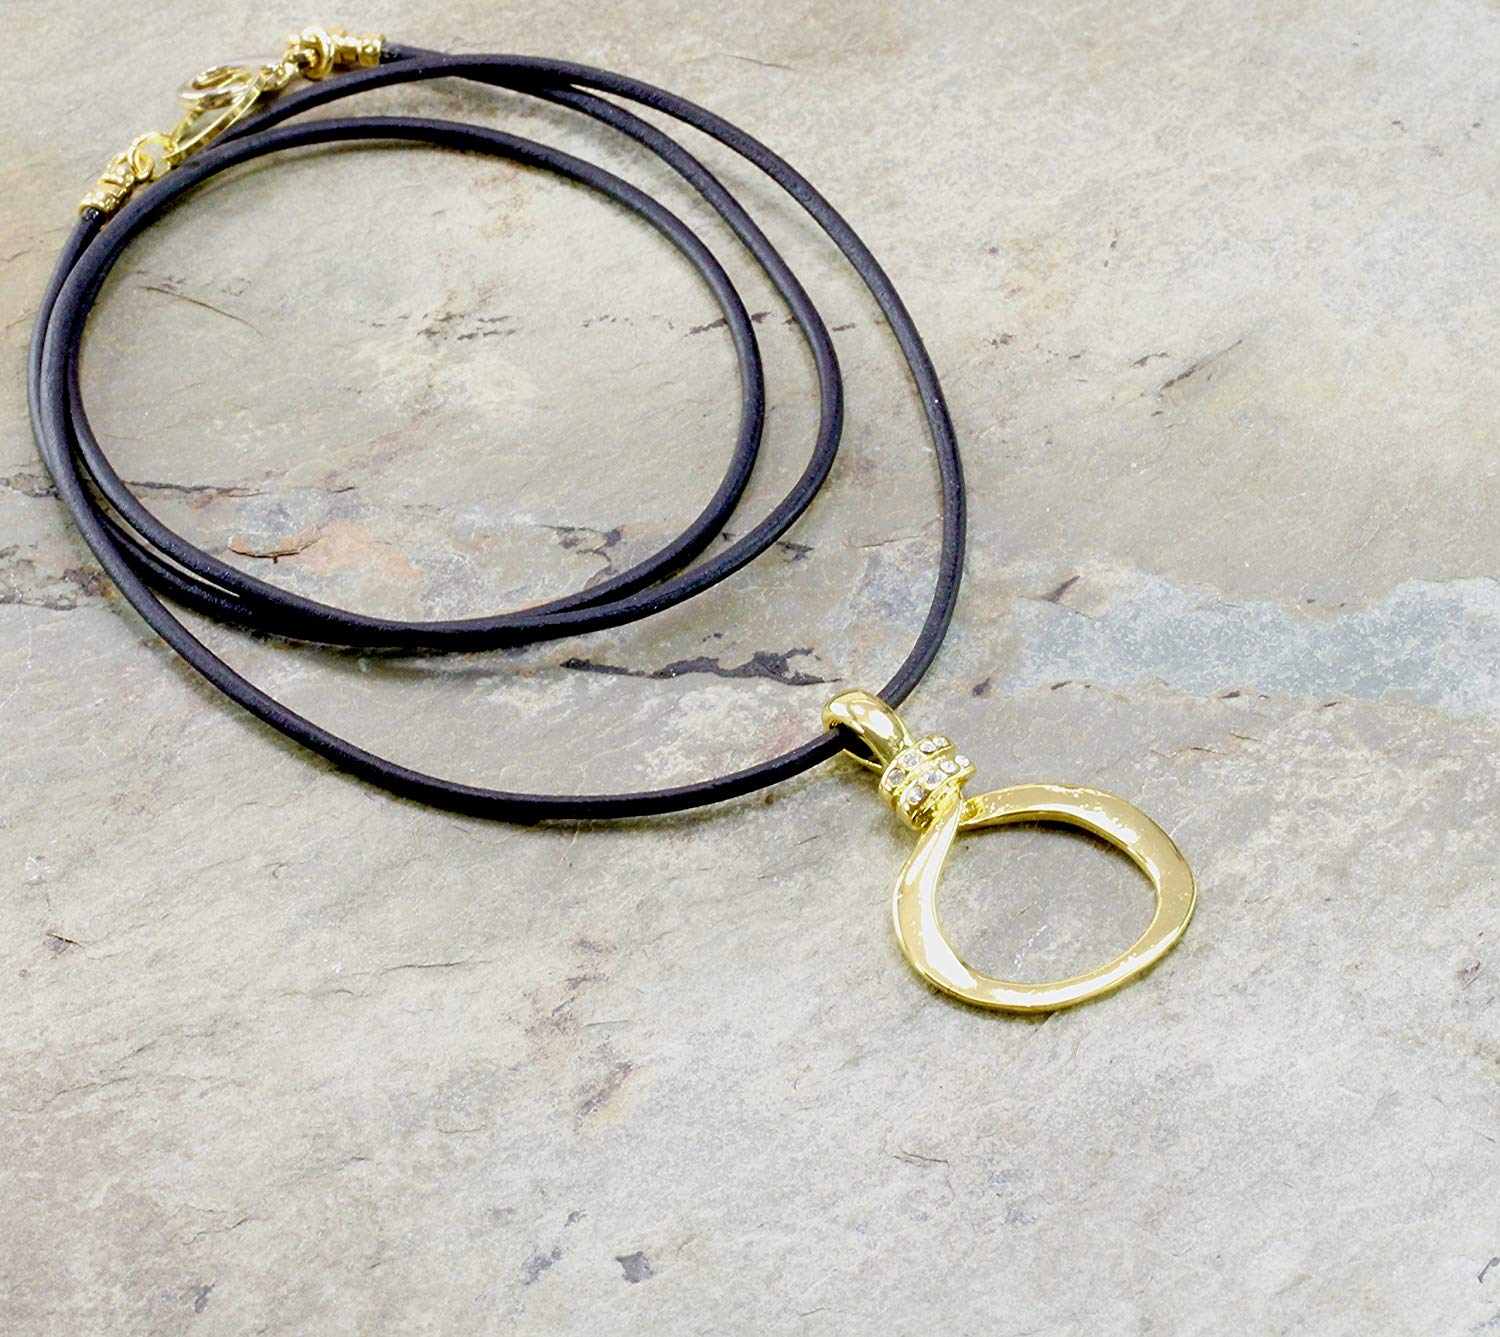 Organic Gold Eyeglass Holder Necklace with Loop and Leather Cord